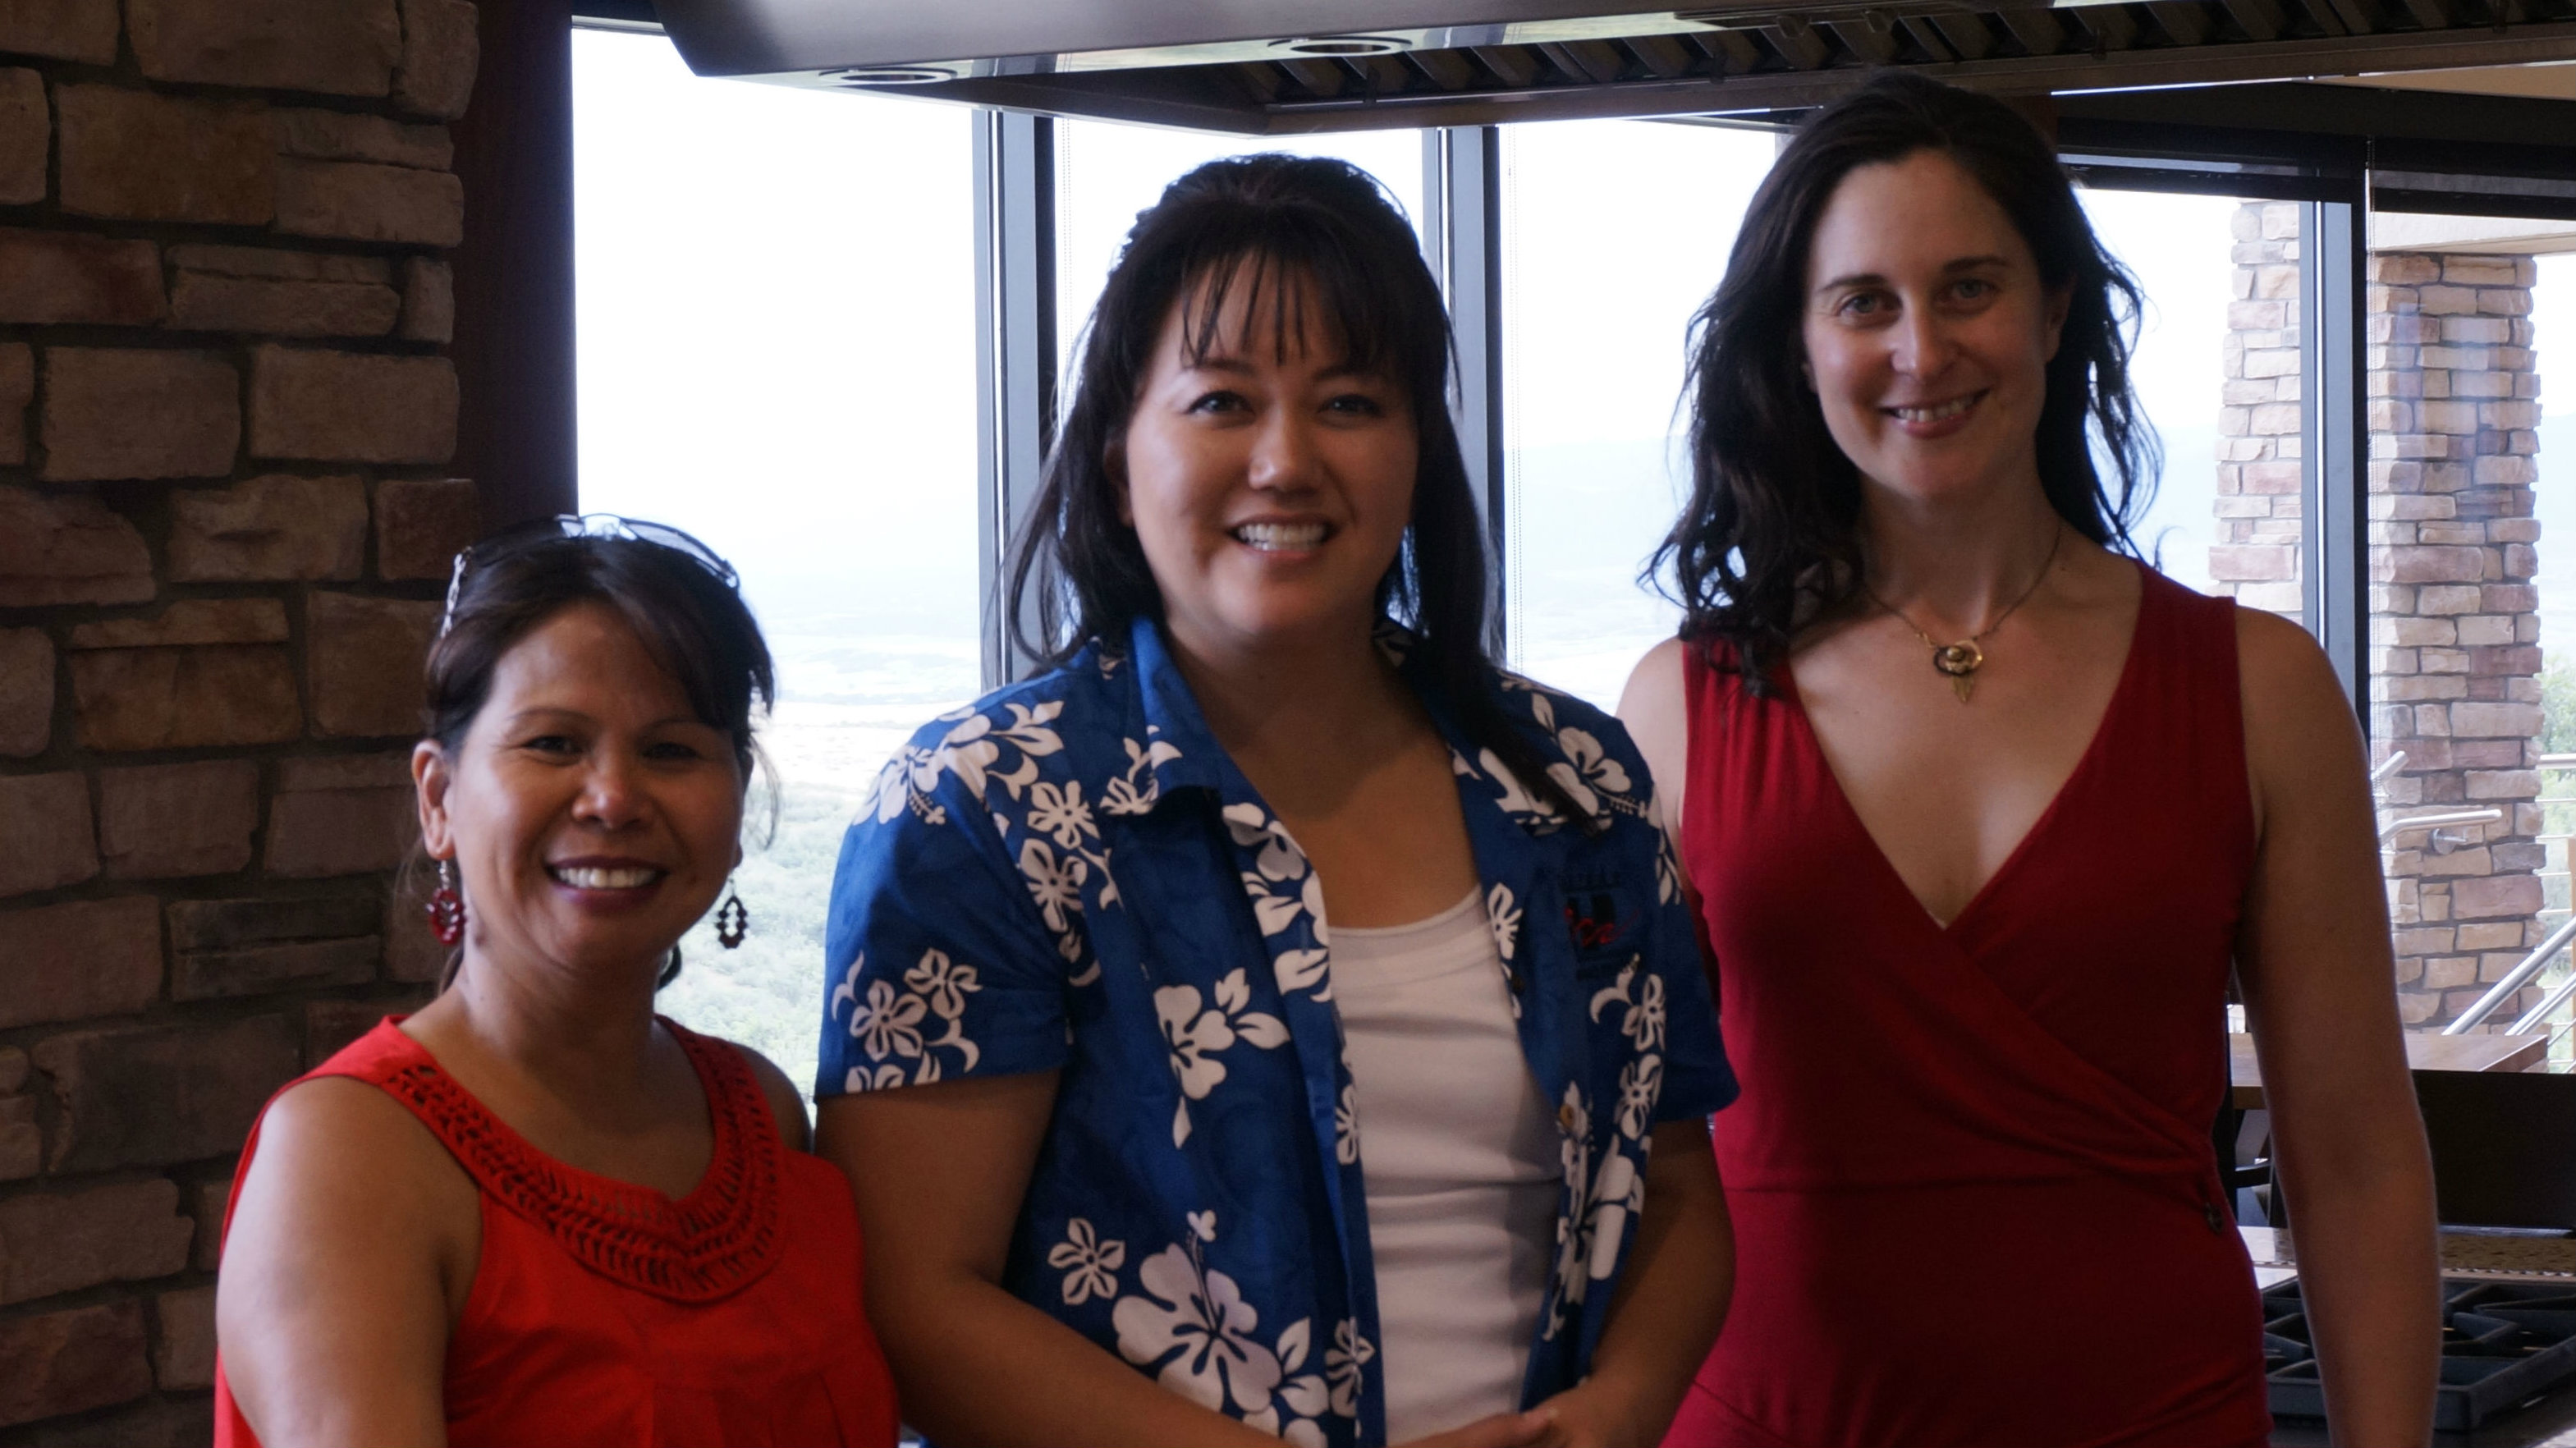 <p>From left to right: Filipina chef Leah Eveleigh, Dragon Boat Festival director Erin Yoshimura and Colorado Art Report host Chloe Veltman at the Backcountry Homes community kitchen in Highlands Ranch.</p>